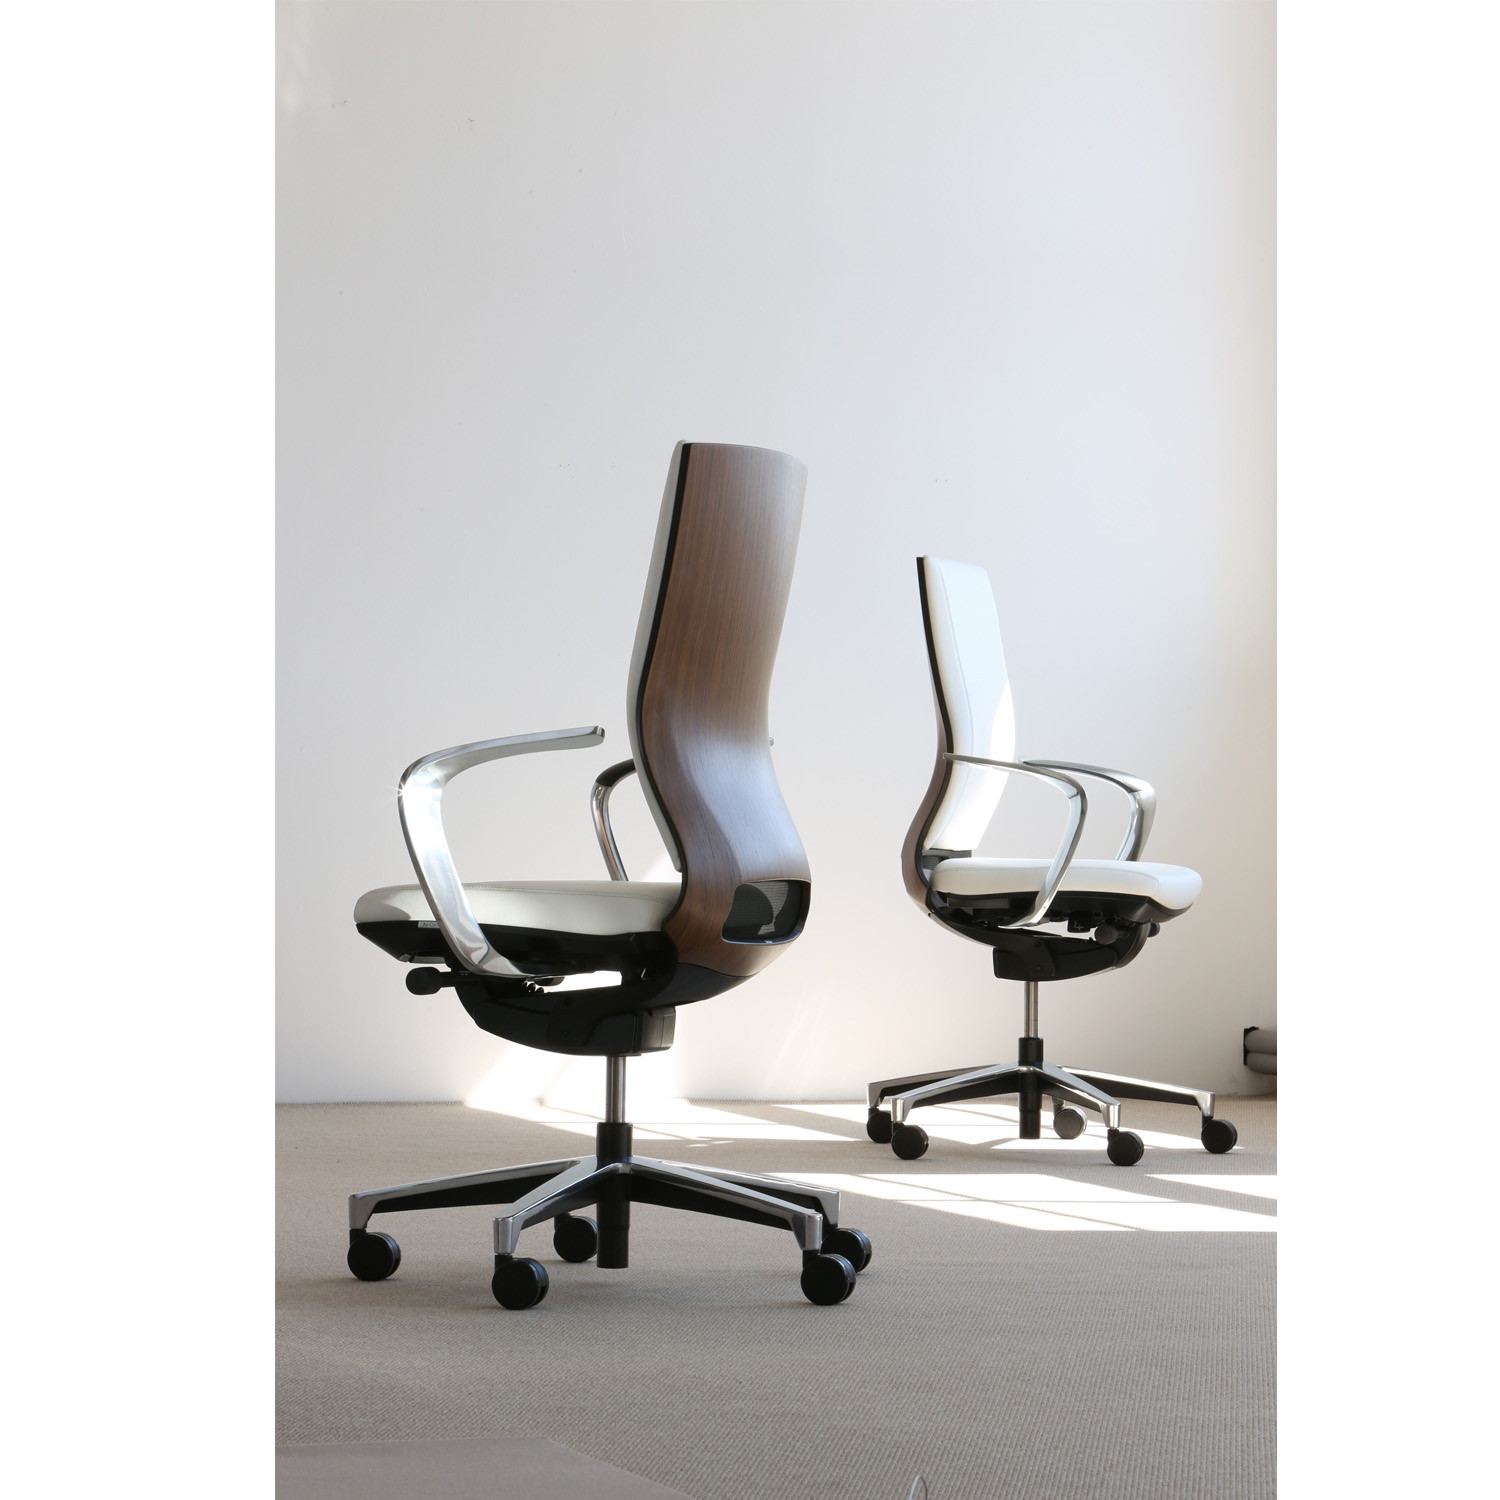 Klober Moteo Executive Office Chairs